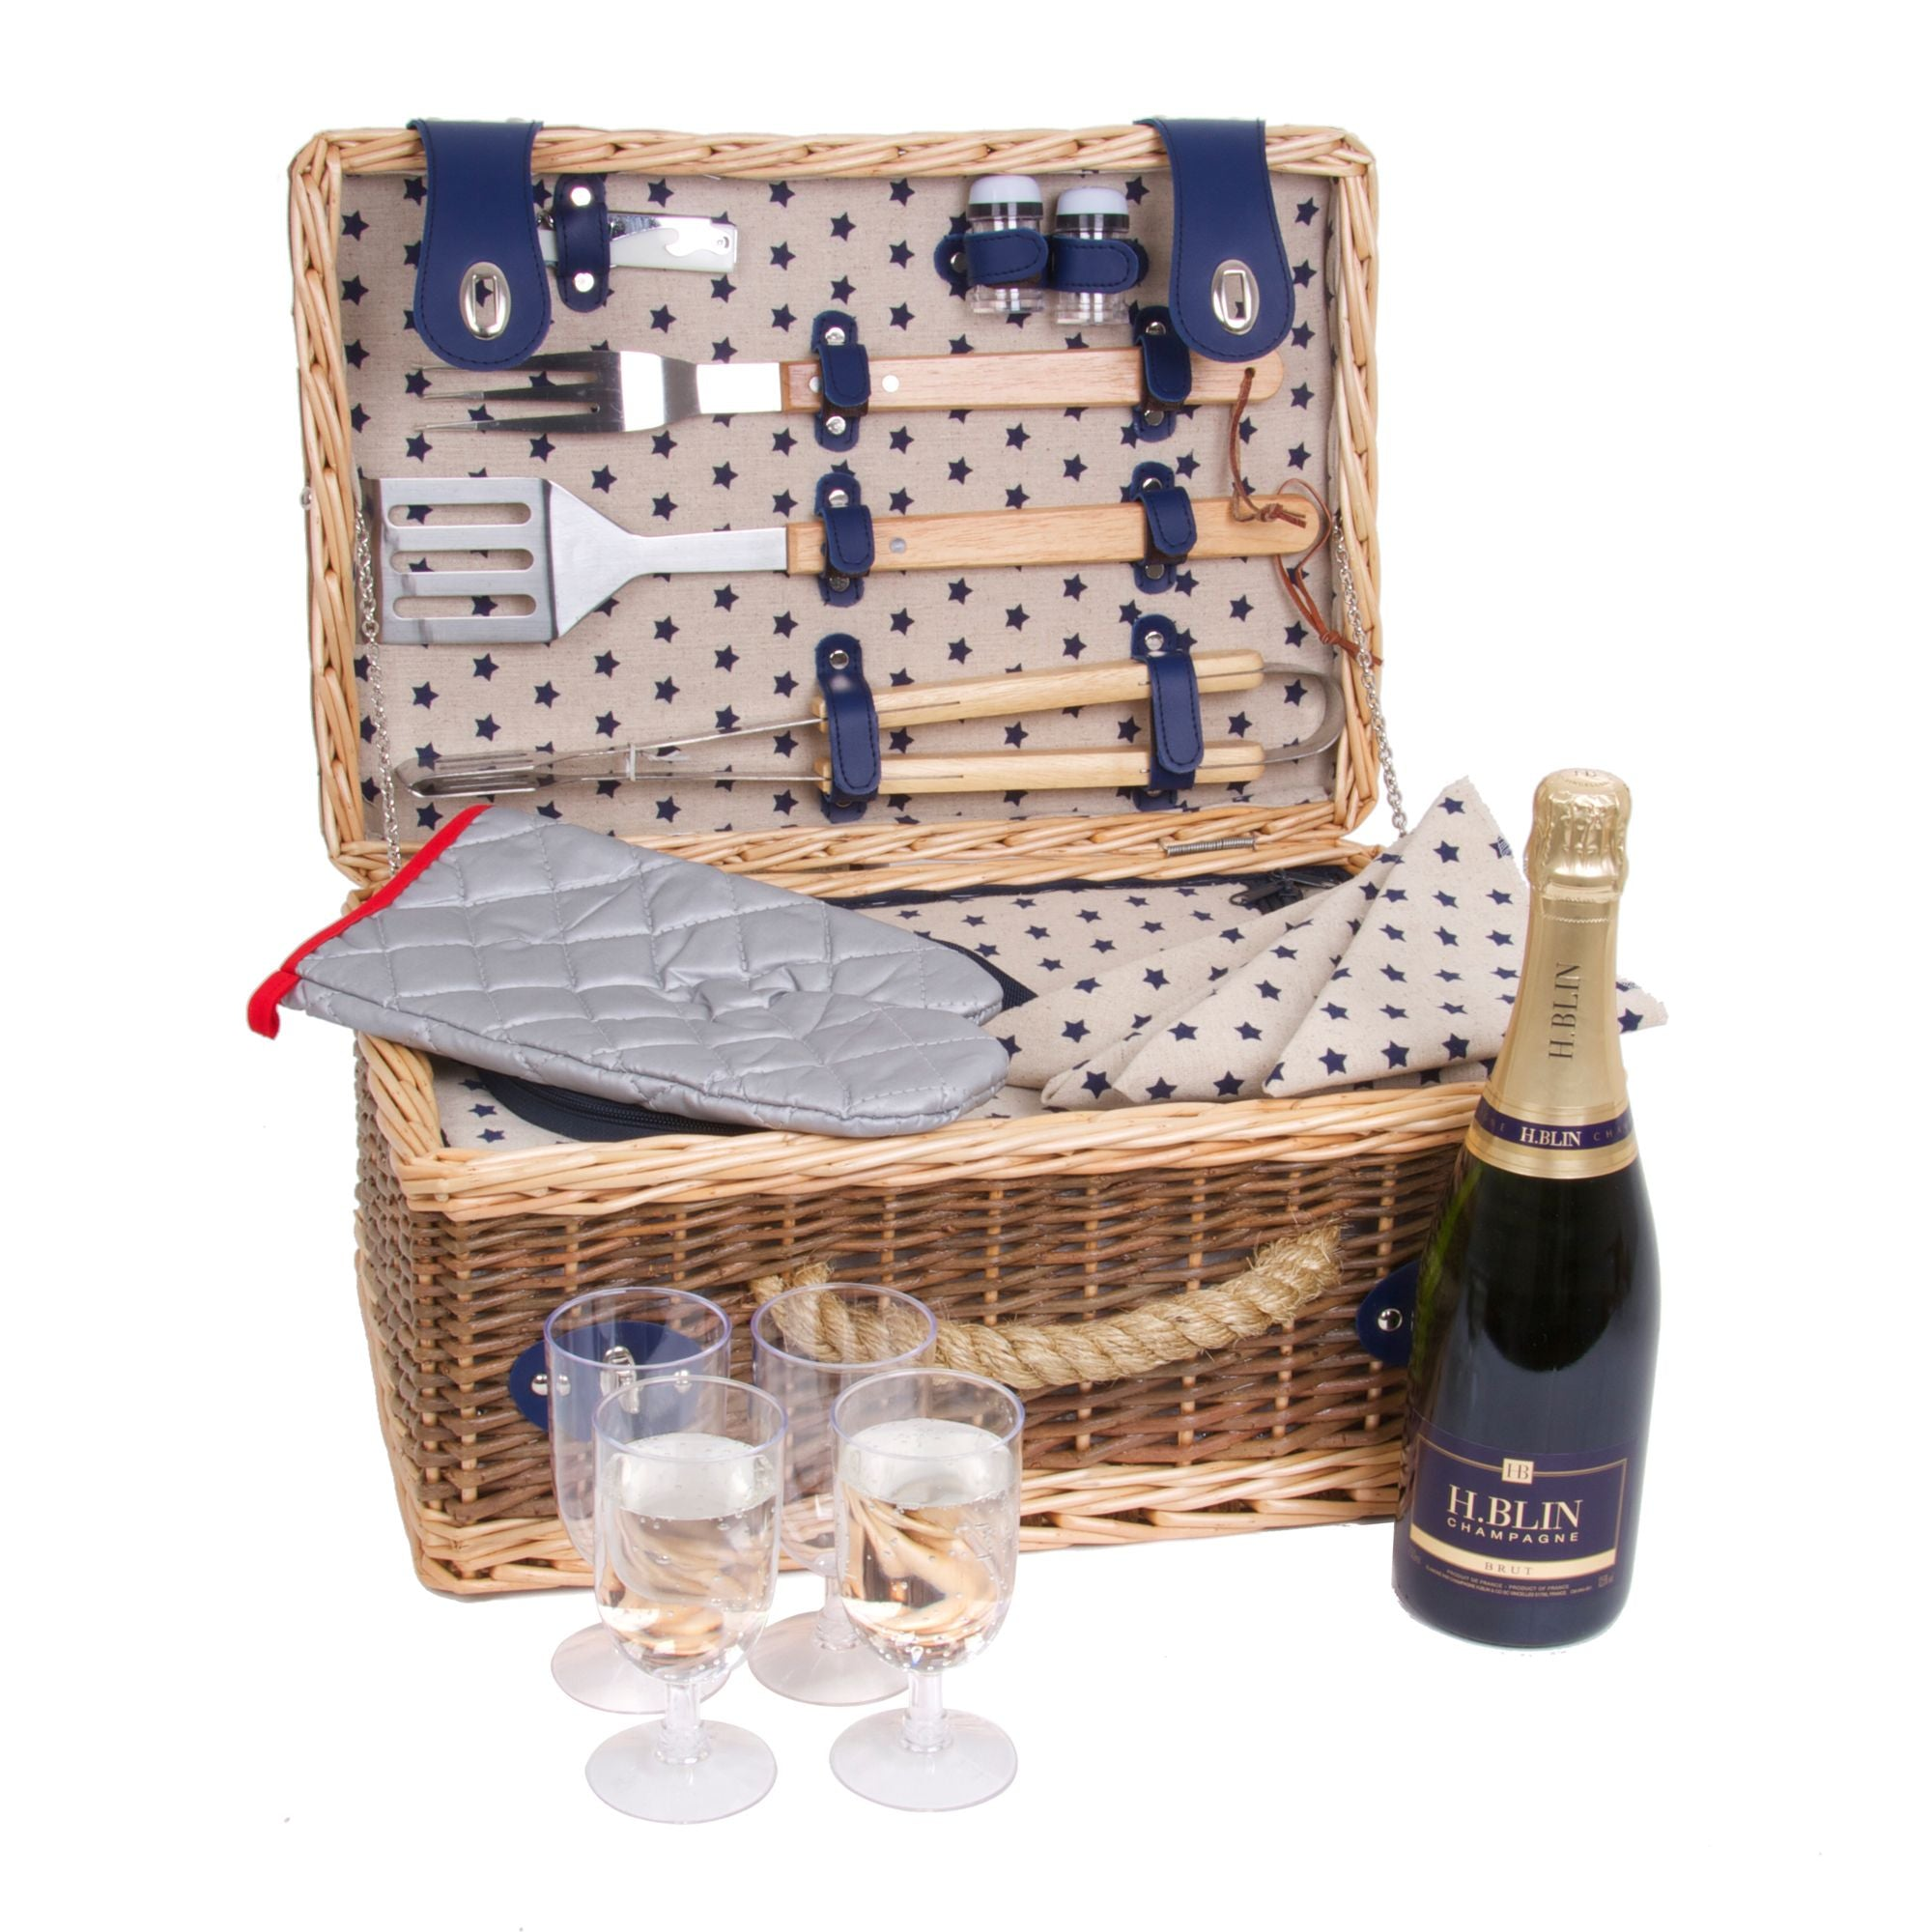 Deluxe BBQ Picnic Hamper by GDS - The Pop Up Deli